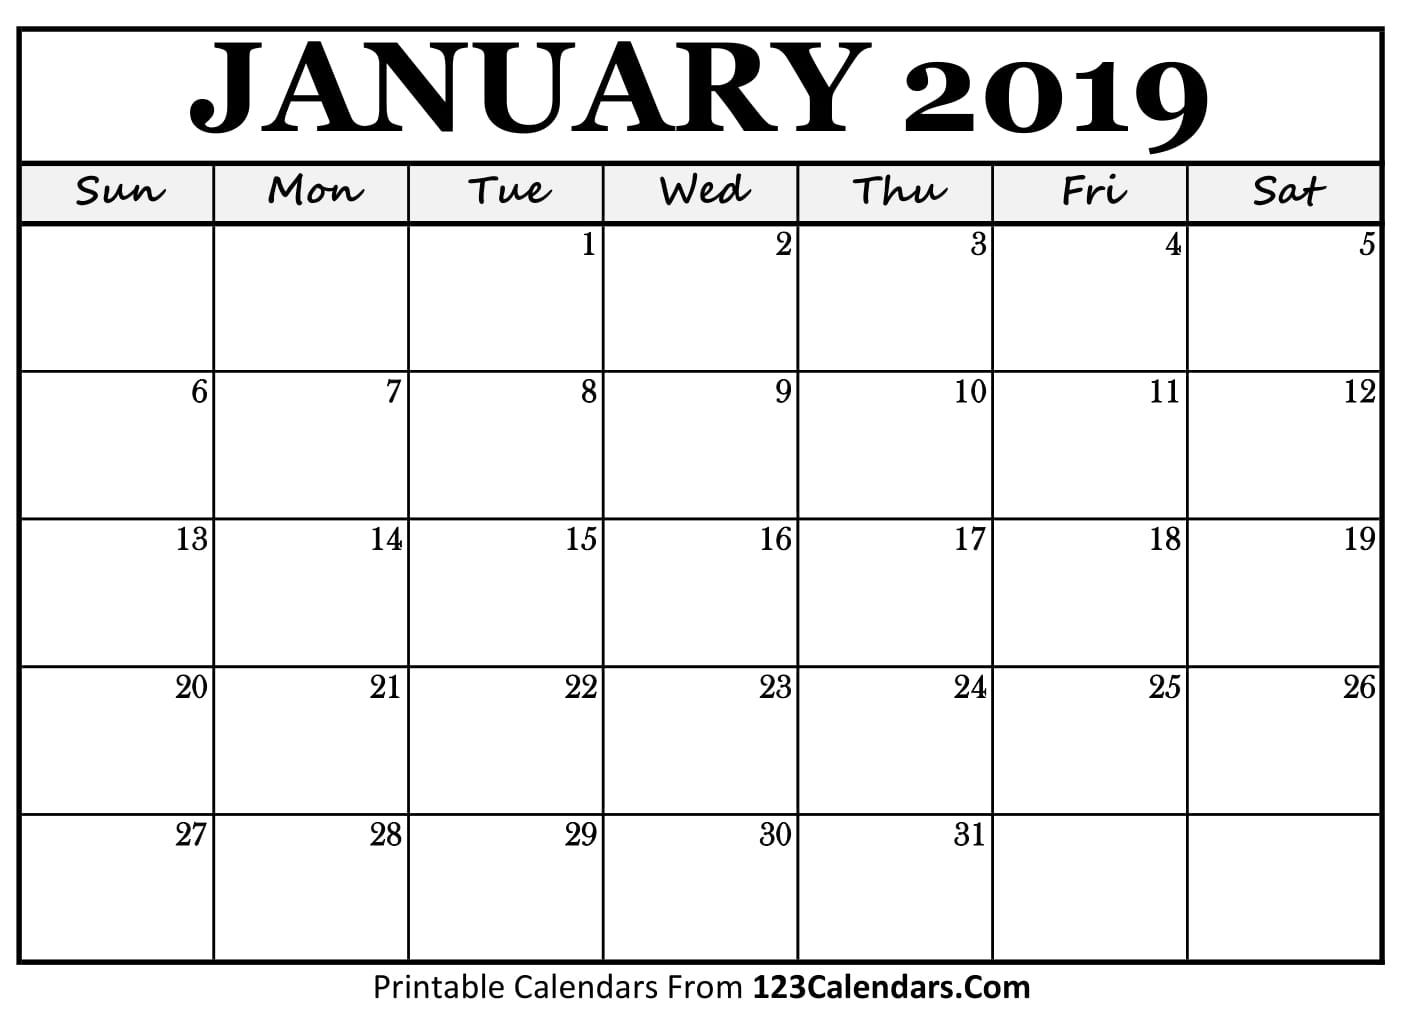 image about Monthly Printable Calendar titled Totally free Printable Calendar